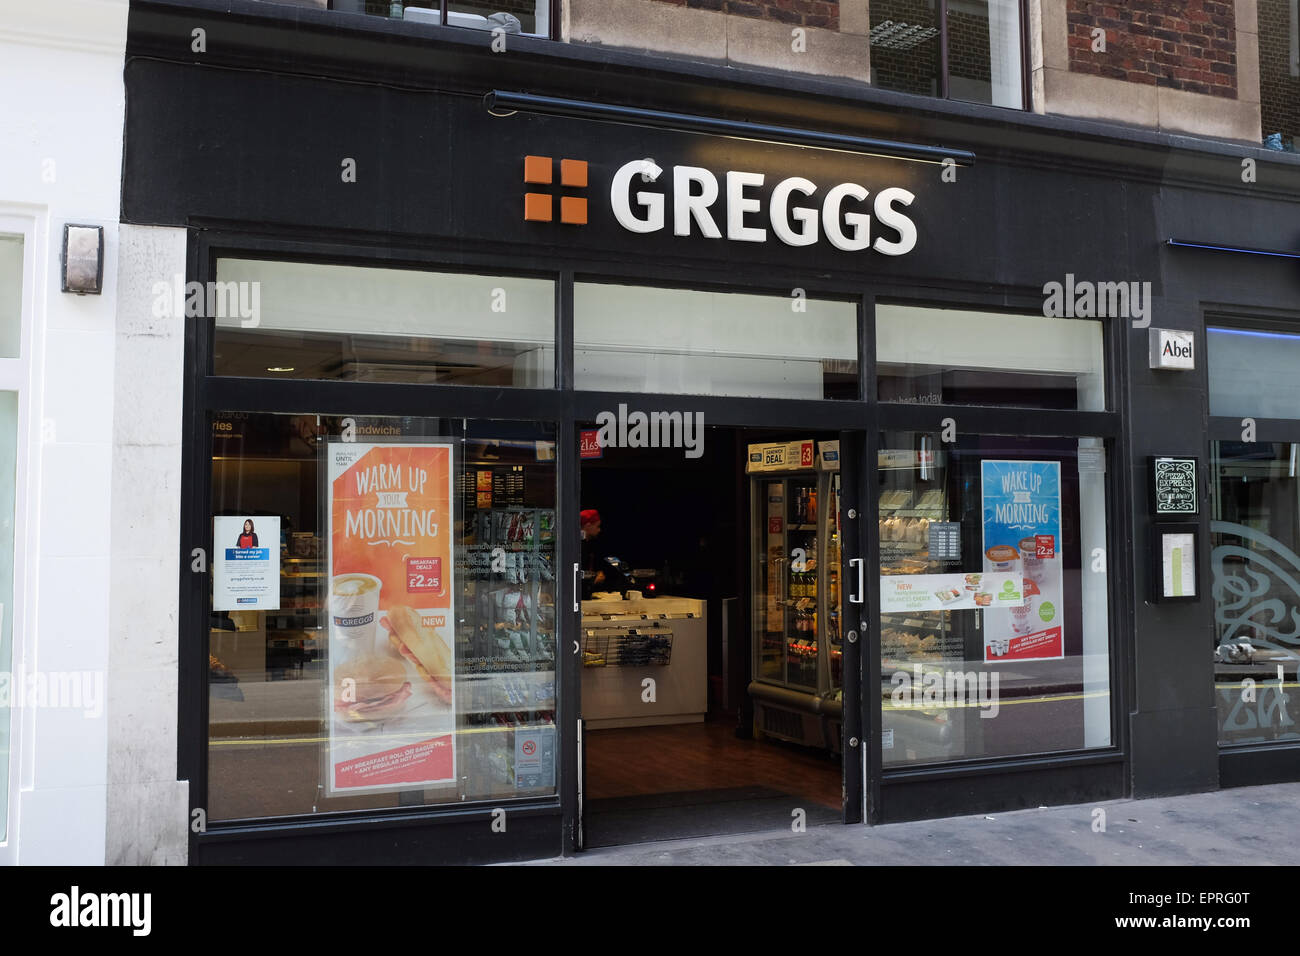 Greggs the baker. Stock Photo